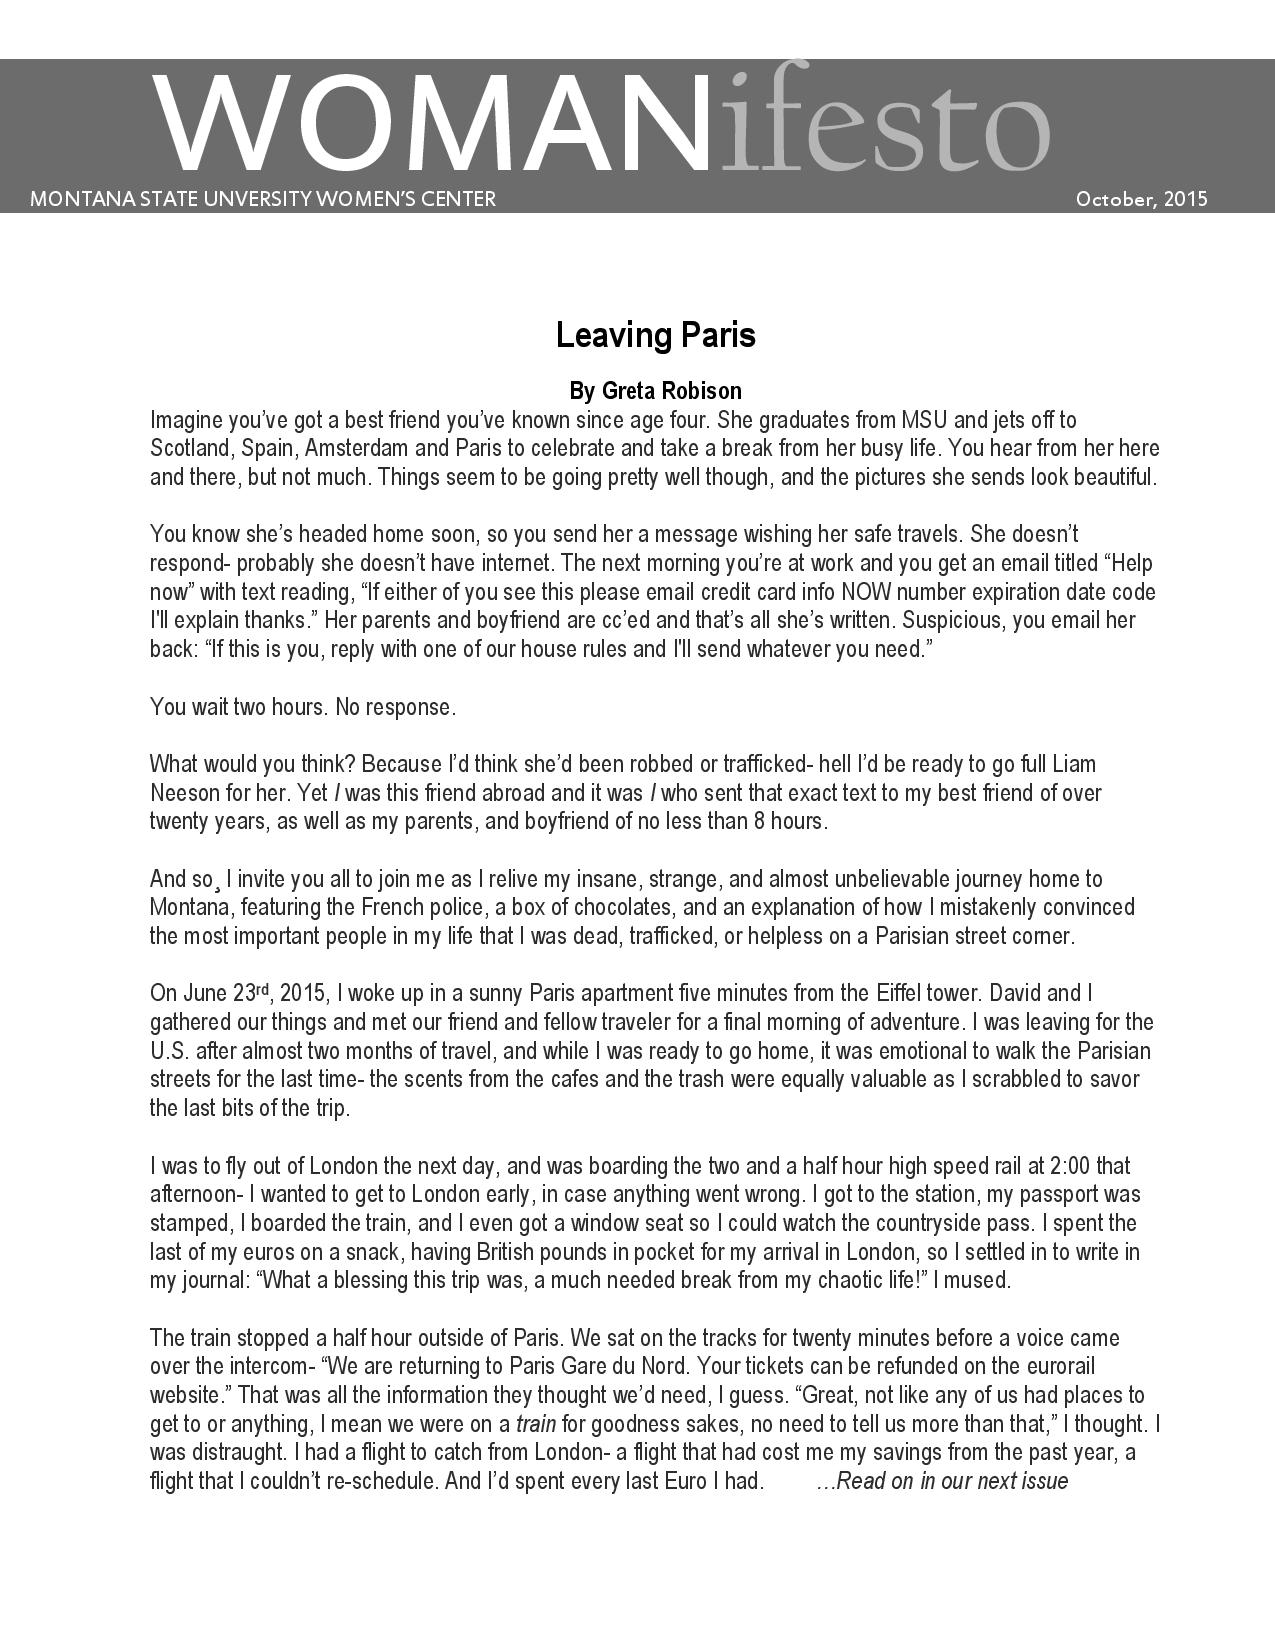 page 4 of newsletter. Contact women's center for word document copy.